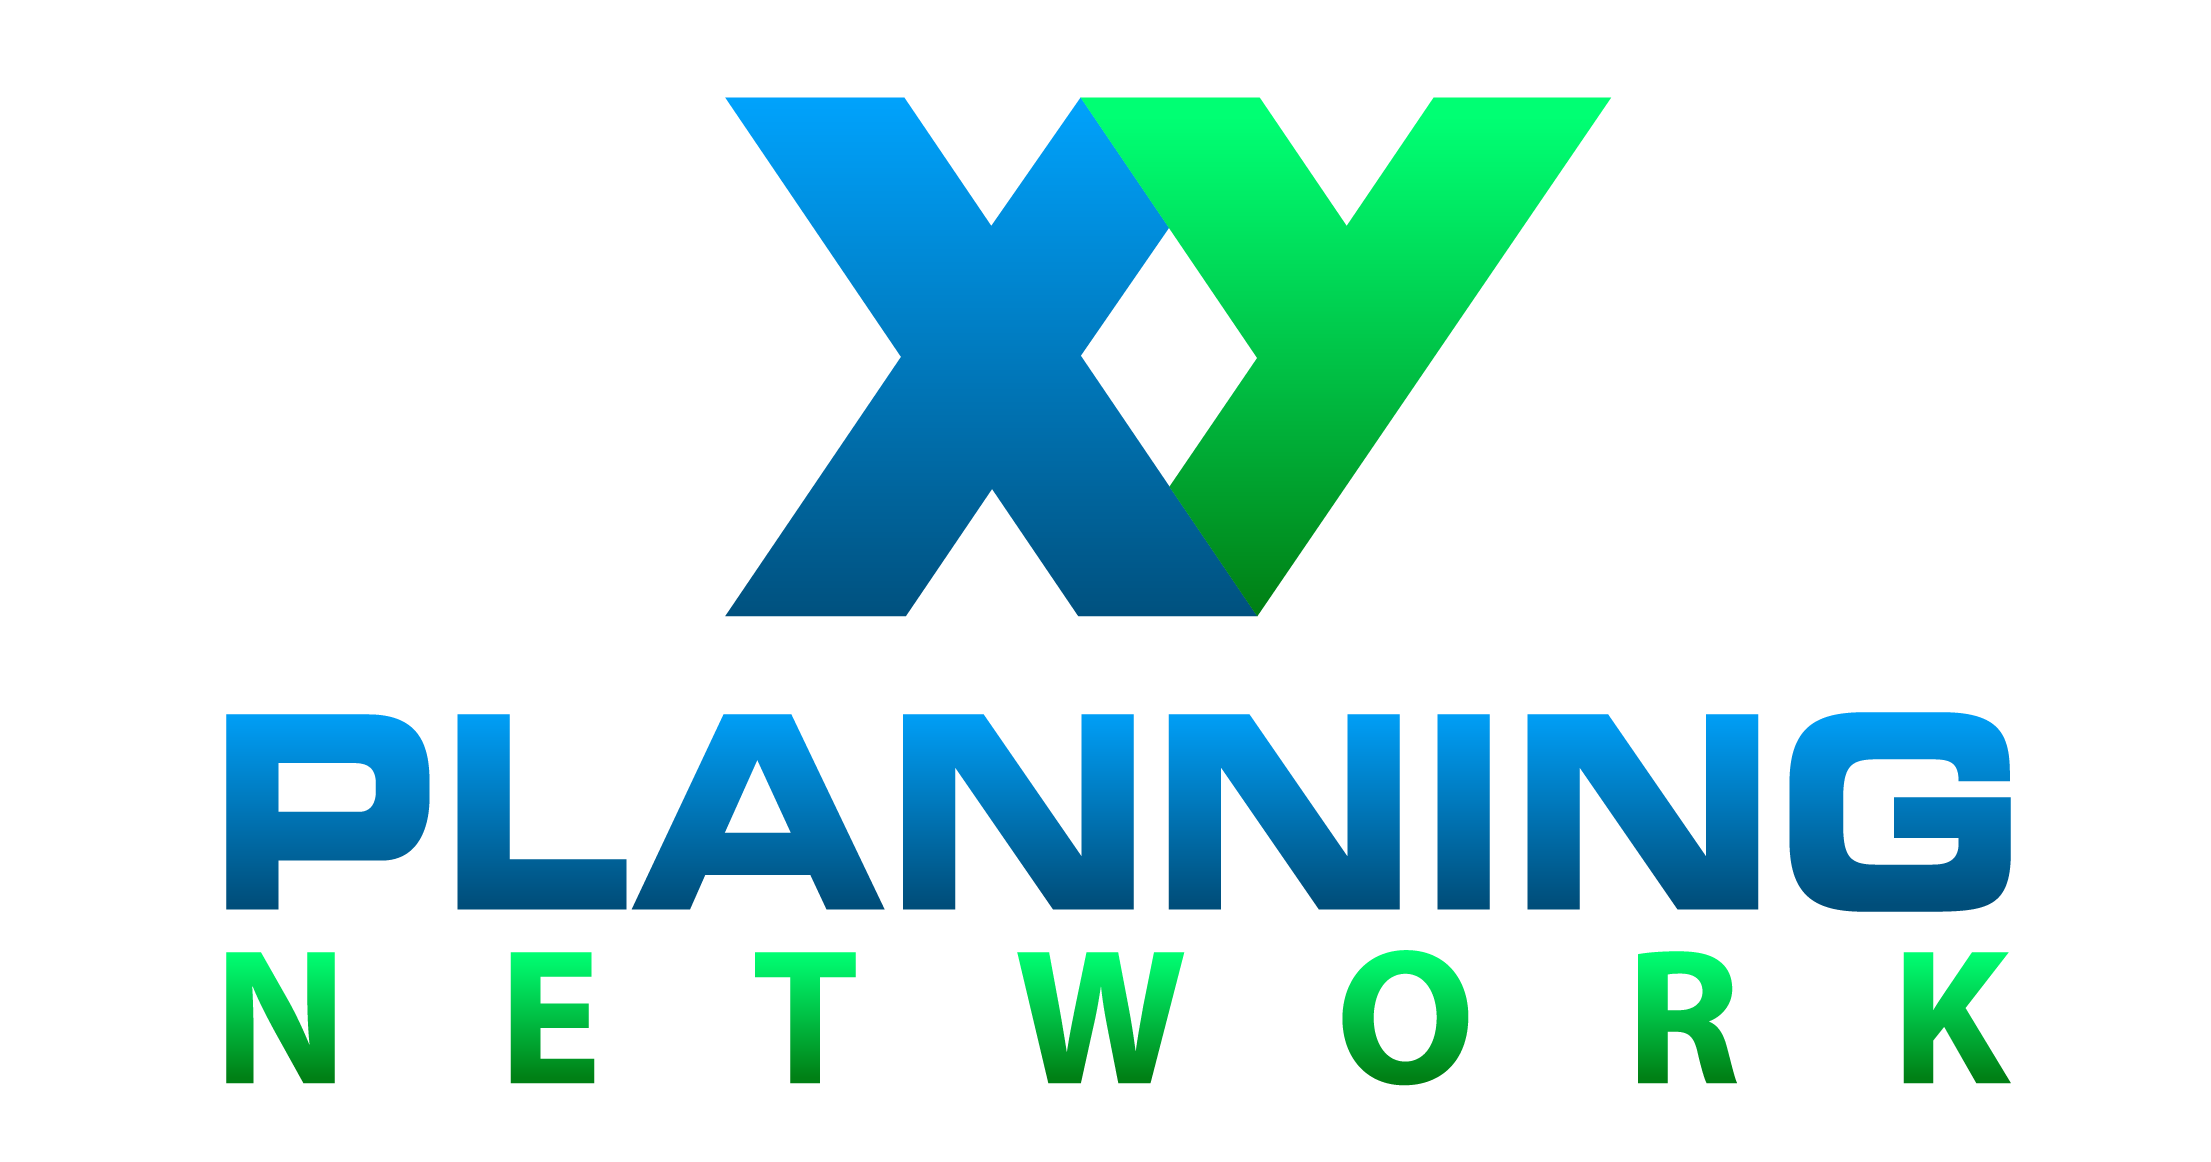 XY Planning Network logo in green and blue